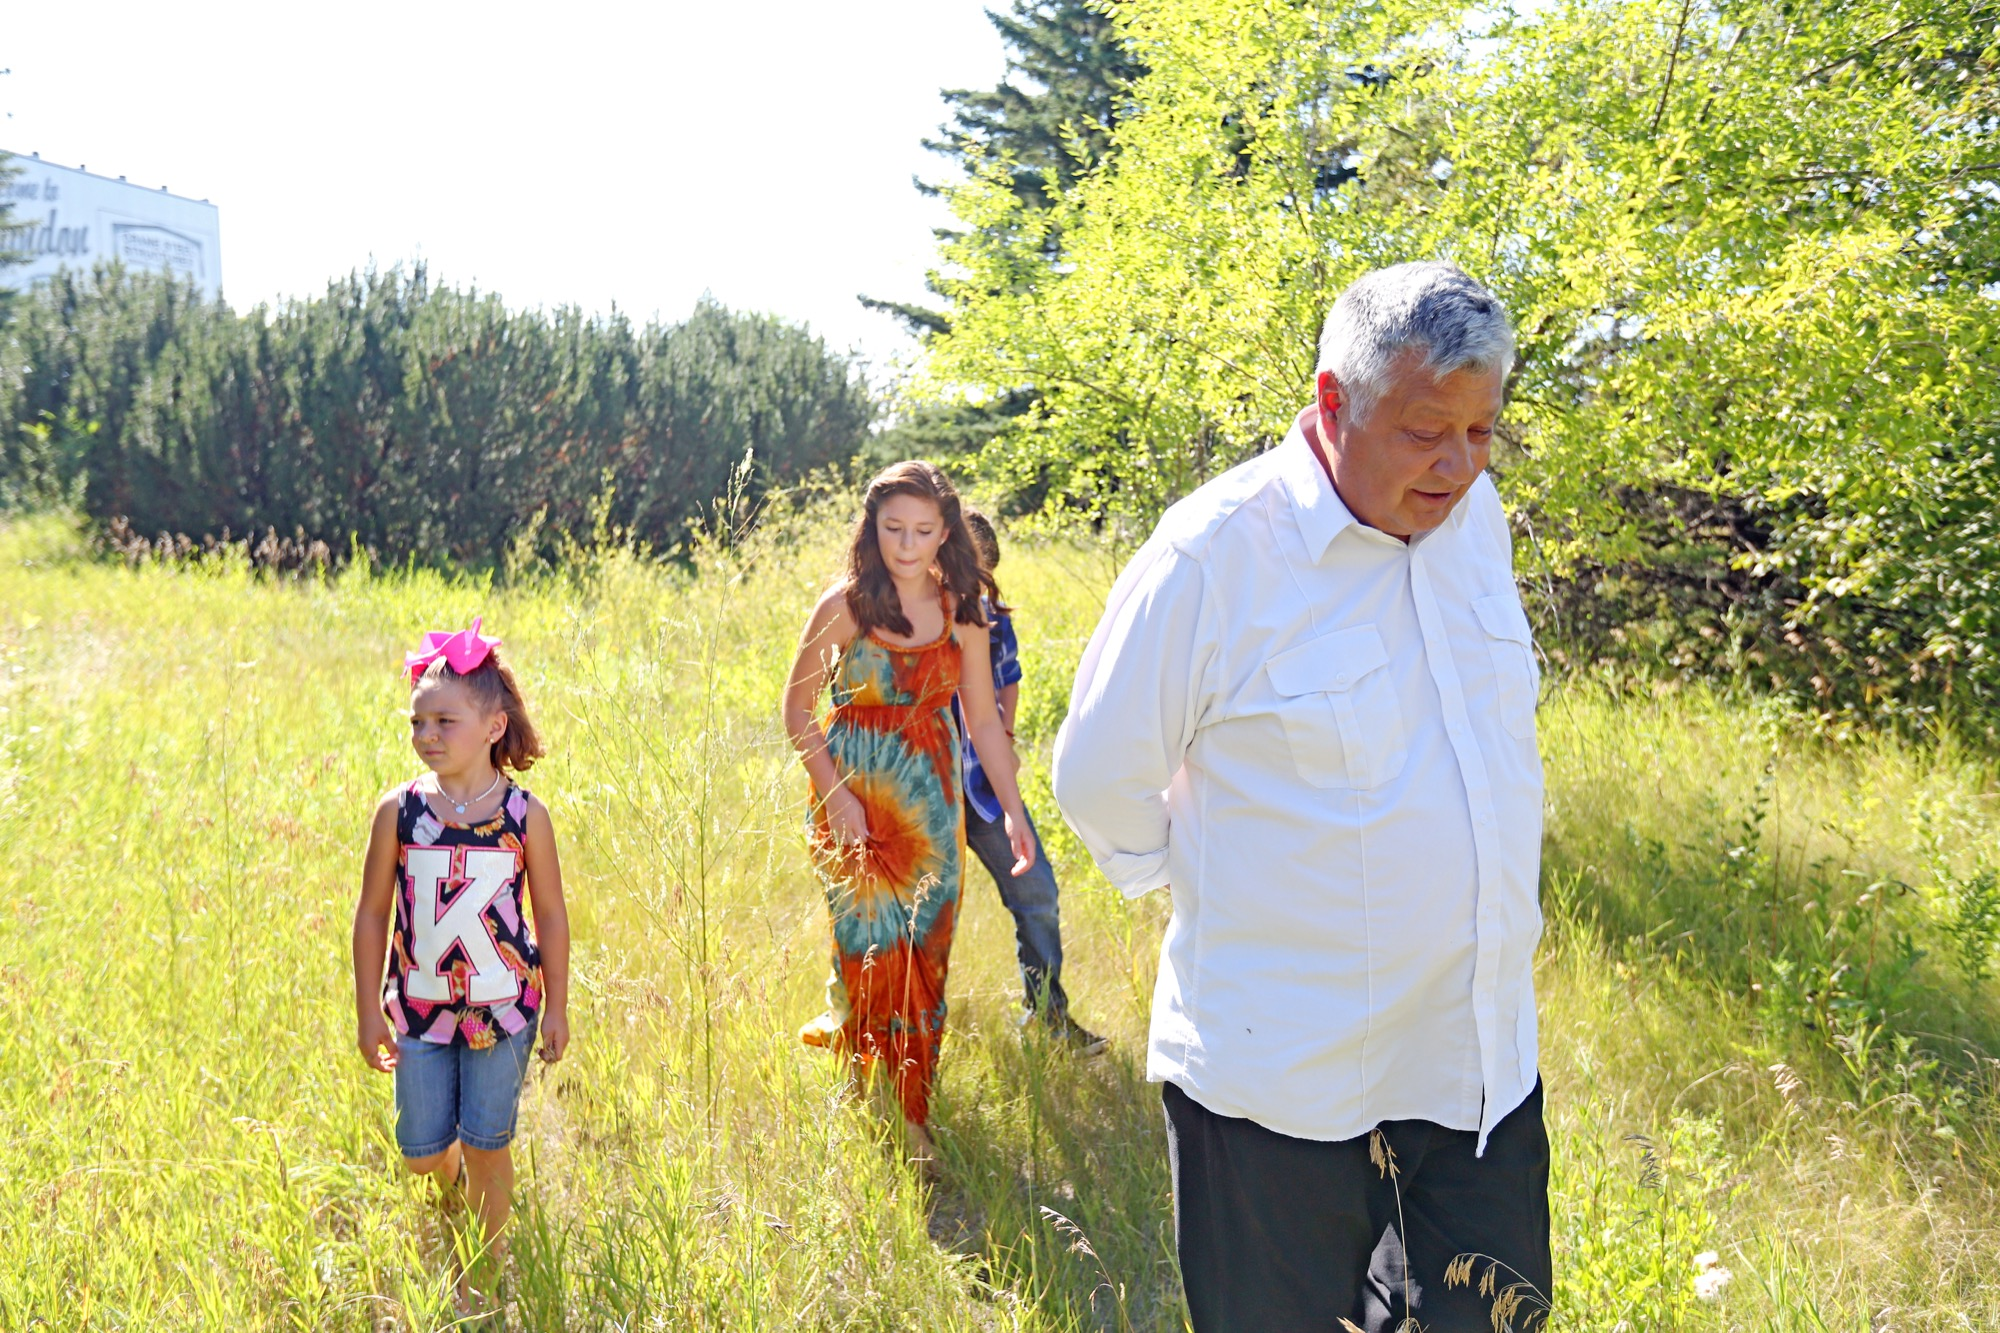 Gambler First Nation Chief David Ledoux walks through the future site of the development at 18th Street North and Clare Avenue with his grandkids Dawjae Smith, Emily Ledoux and Dylan Ledoux last August.